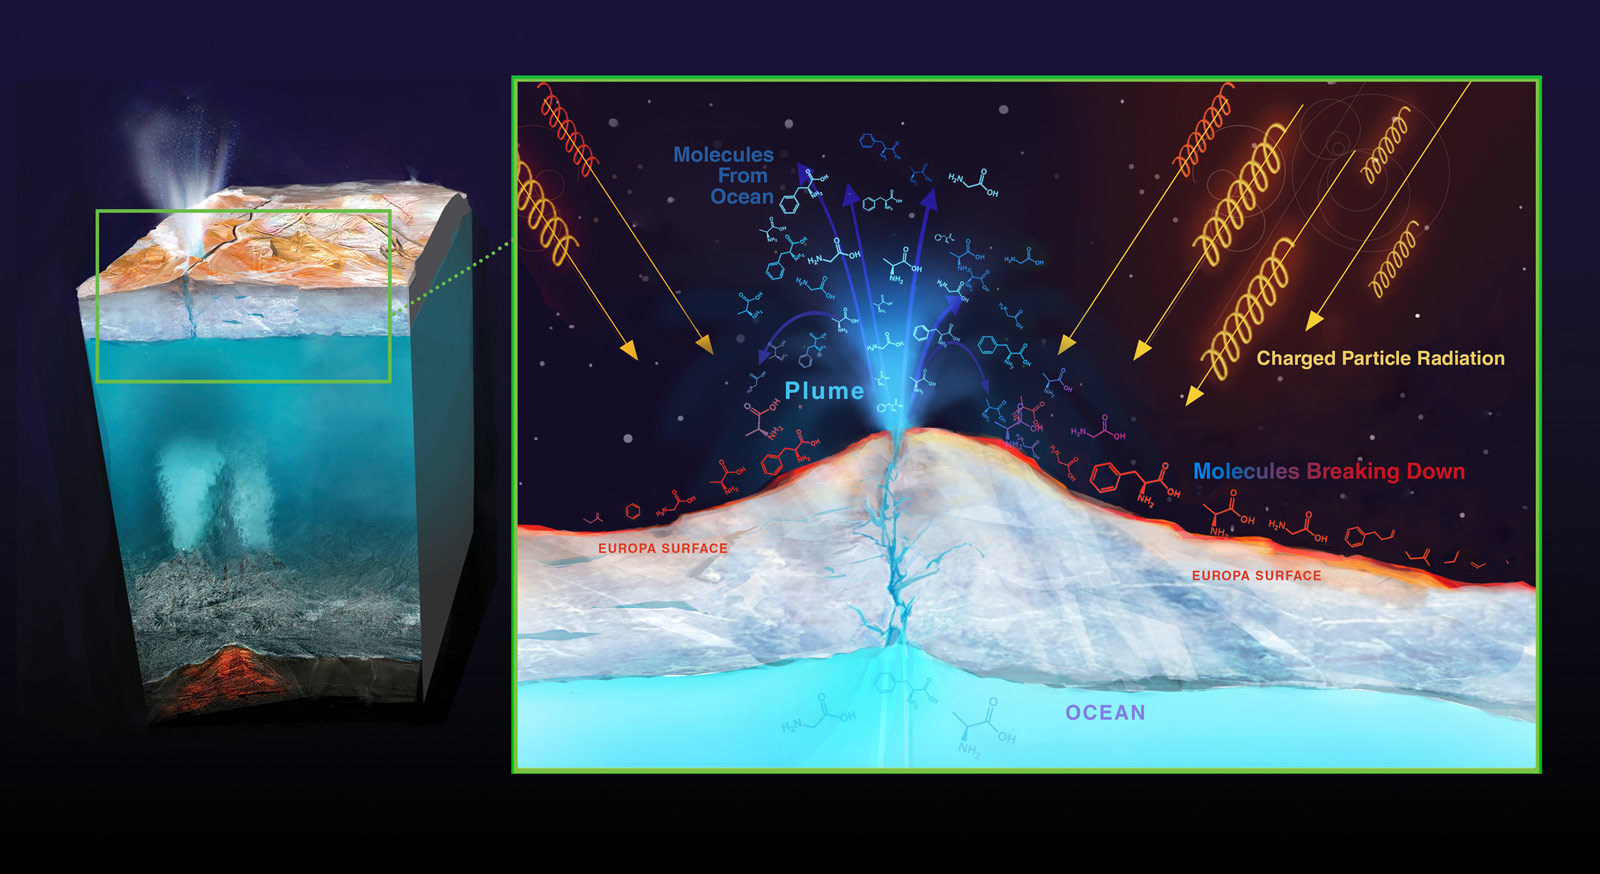 Surface radiation on Europa